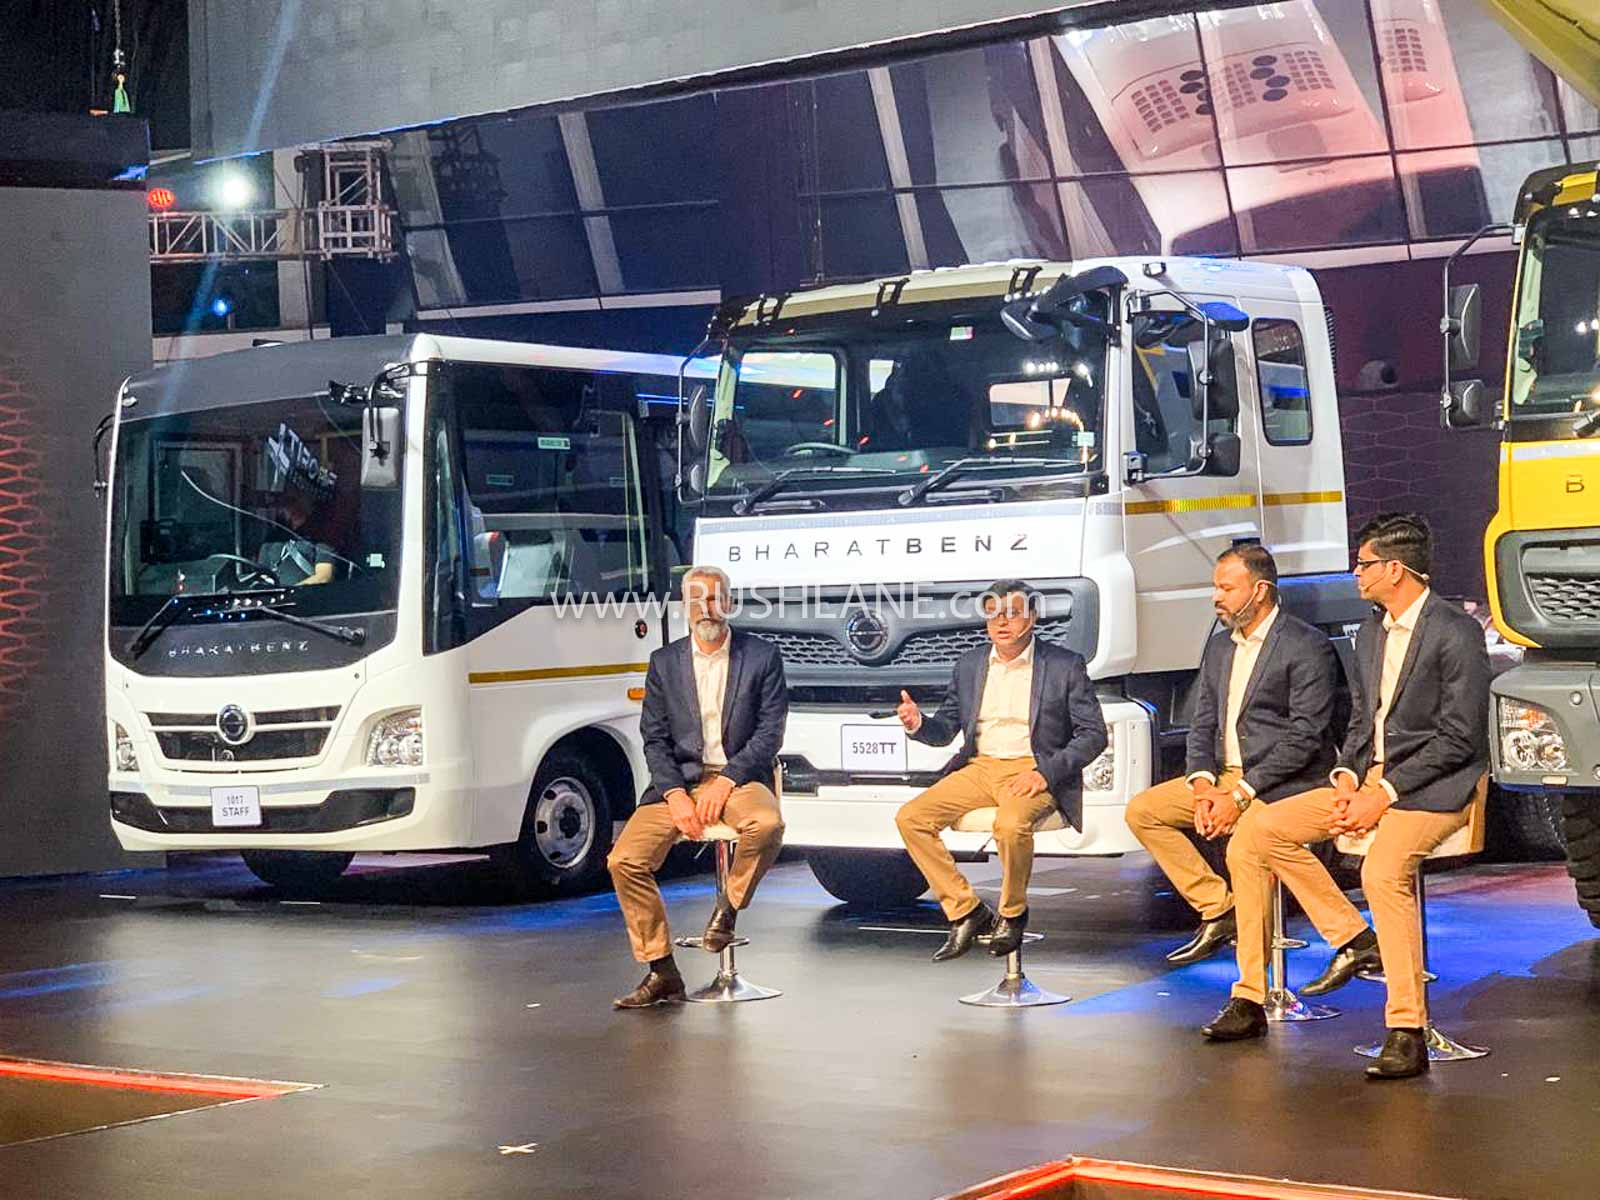 2020 Daimler Bharat Benz Trucks and Buses launch